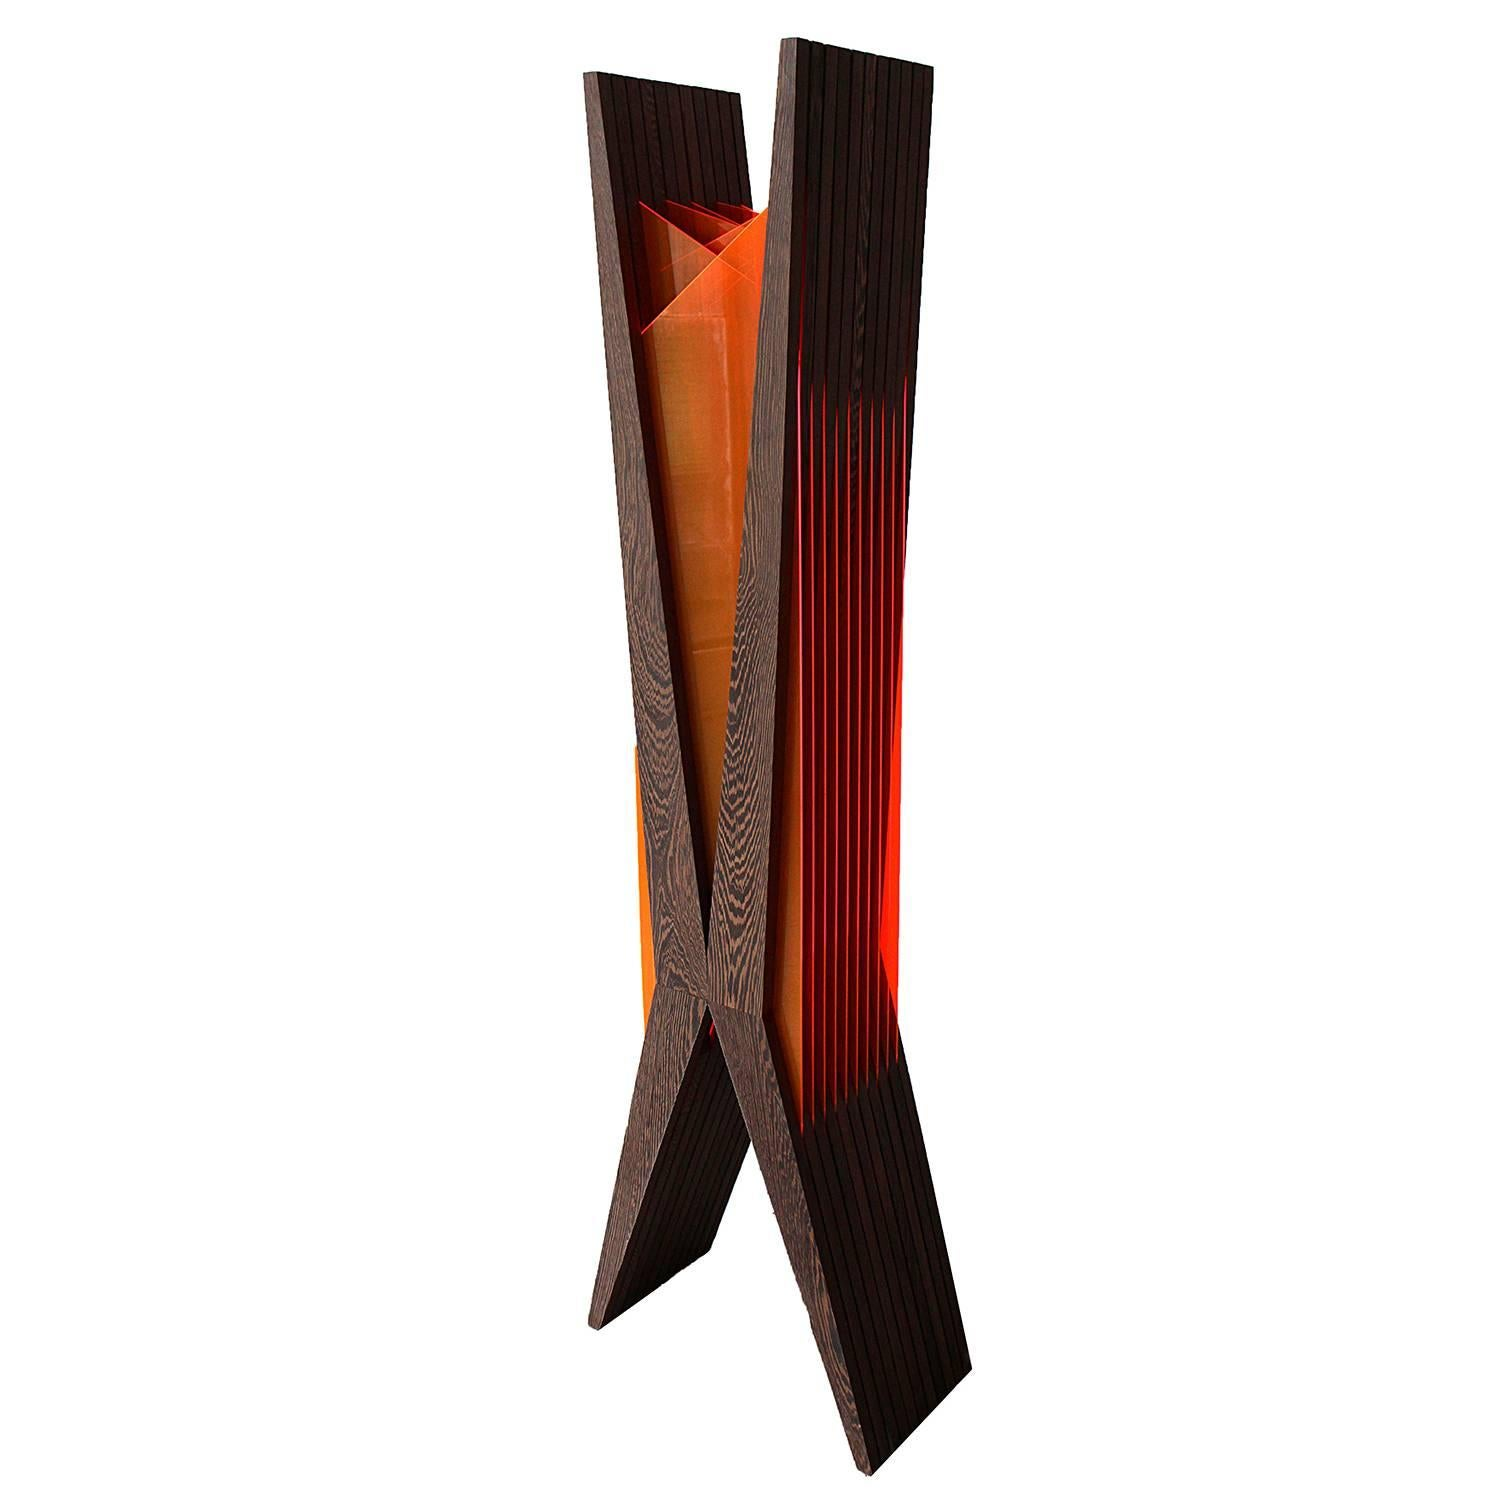 Limited Edition Series LED and Natural Light Reflecting Floor Lamp Sculpture